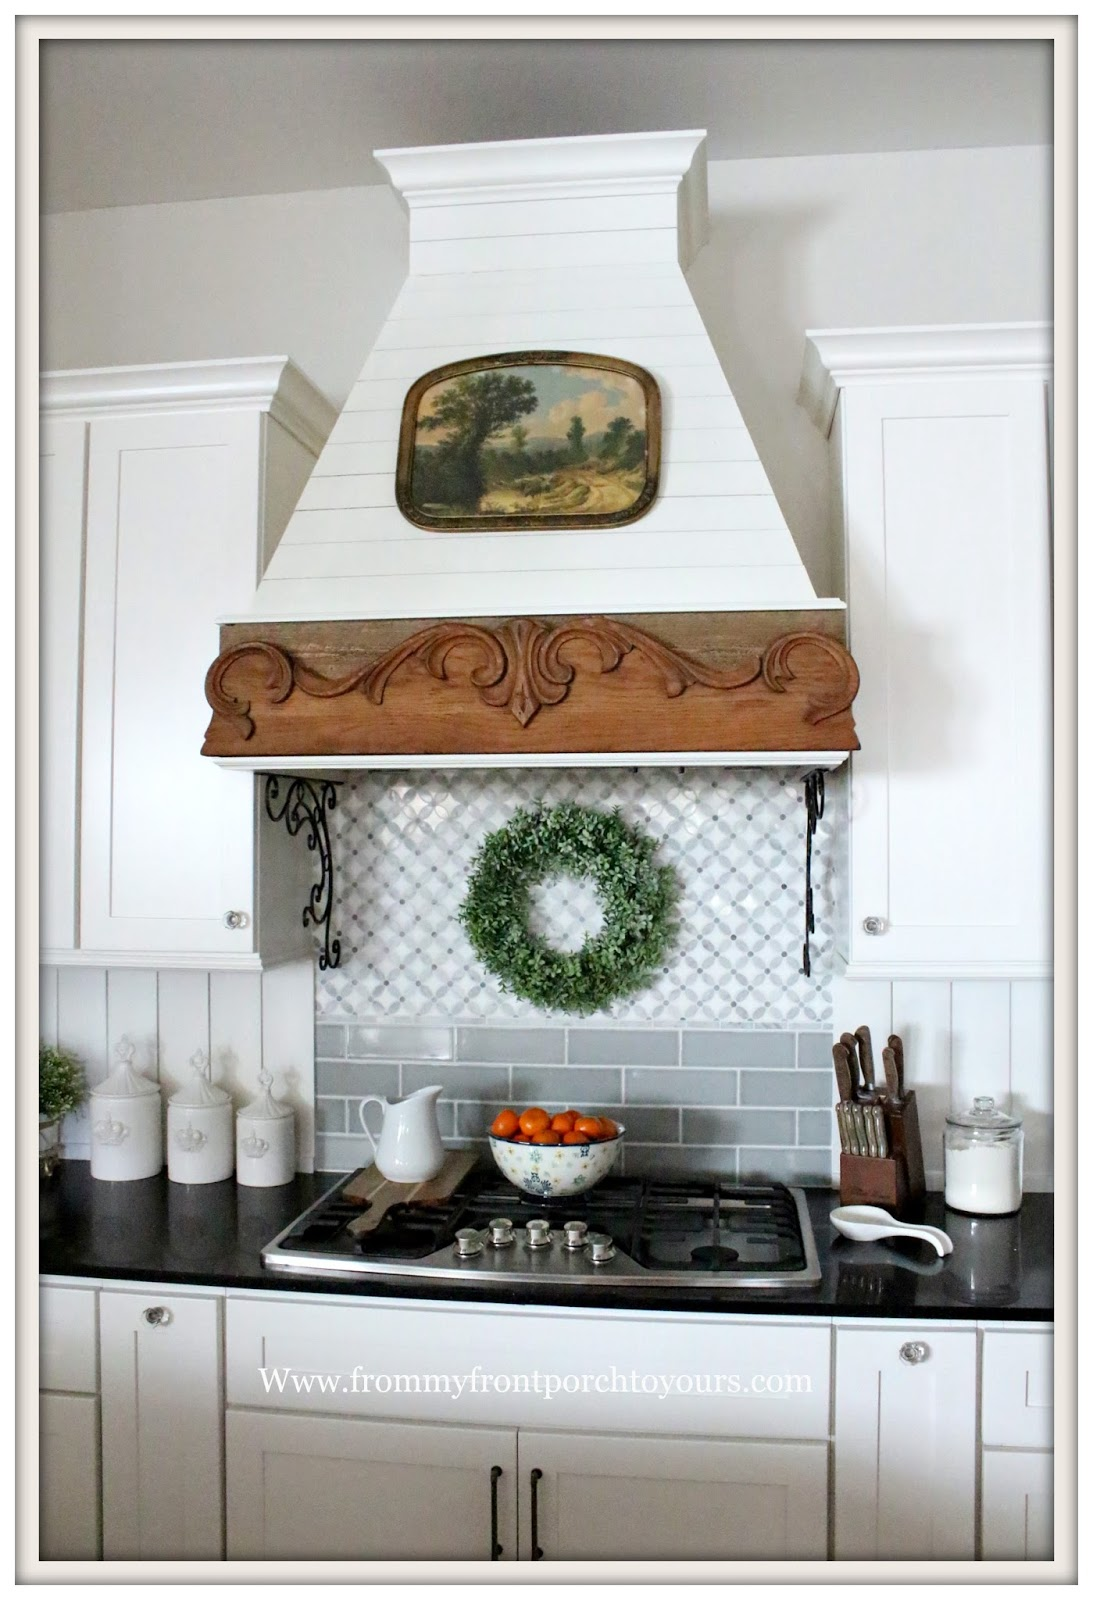 Best Kitchen Gallery: From My Front Porch To Yours Simple Winter French Country Farmhouse of Farm Style Kitchen Hoods on rachelxblog.com